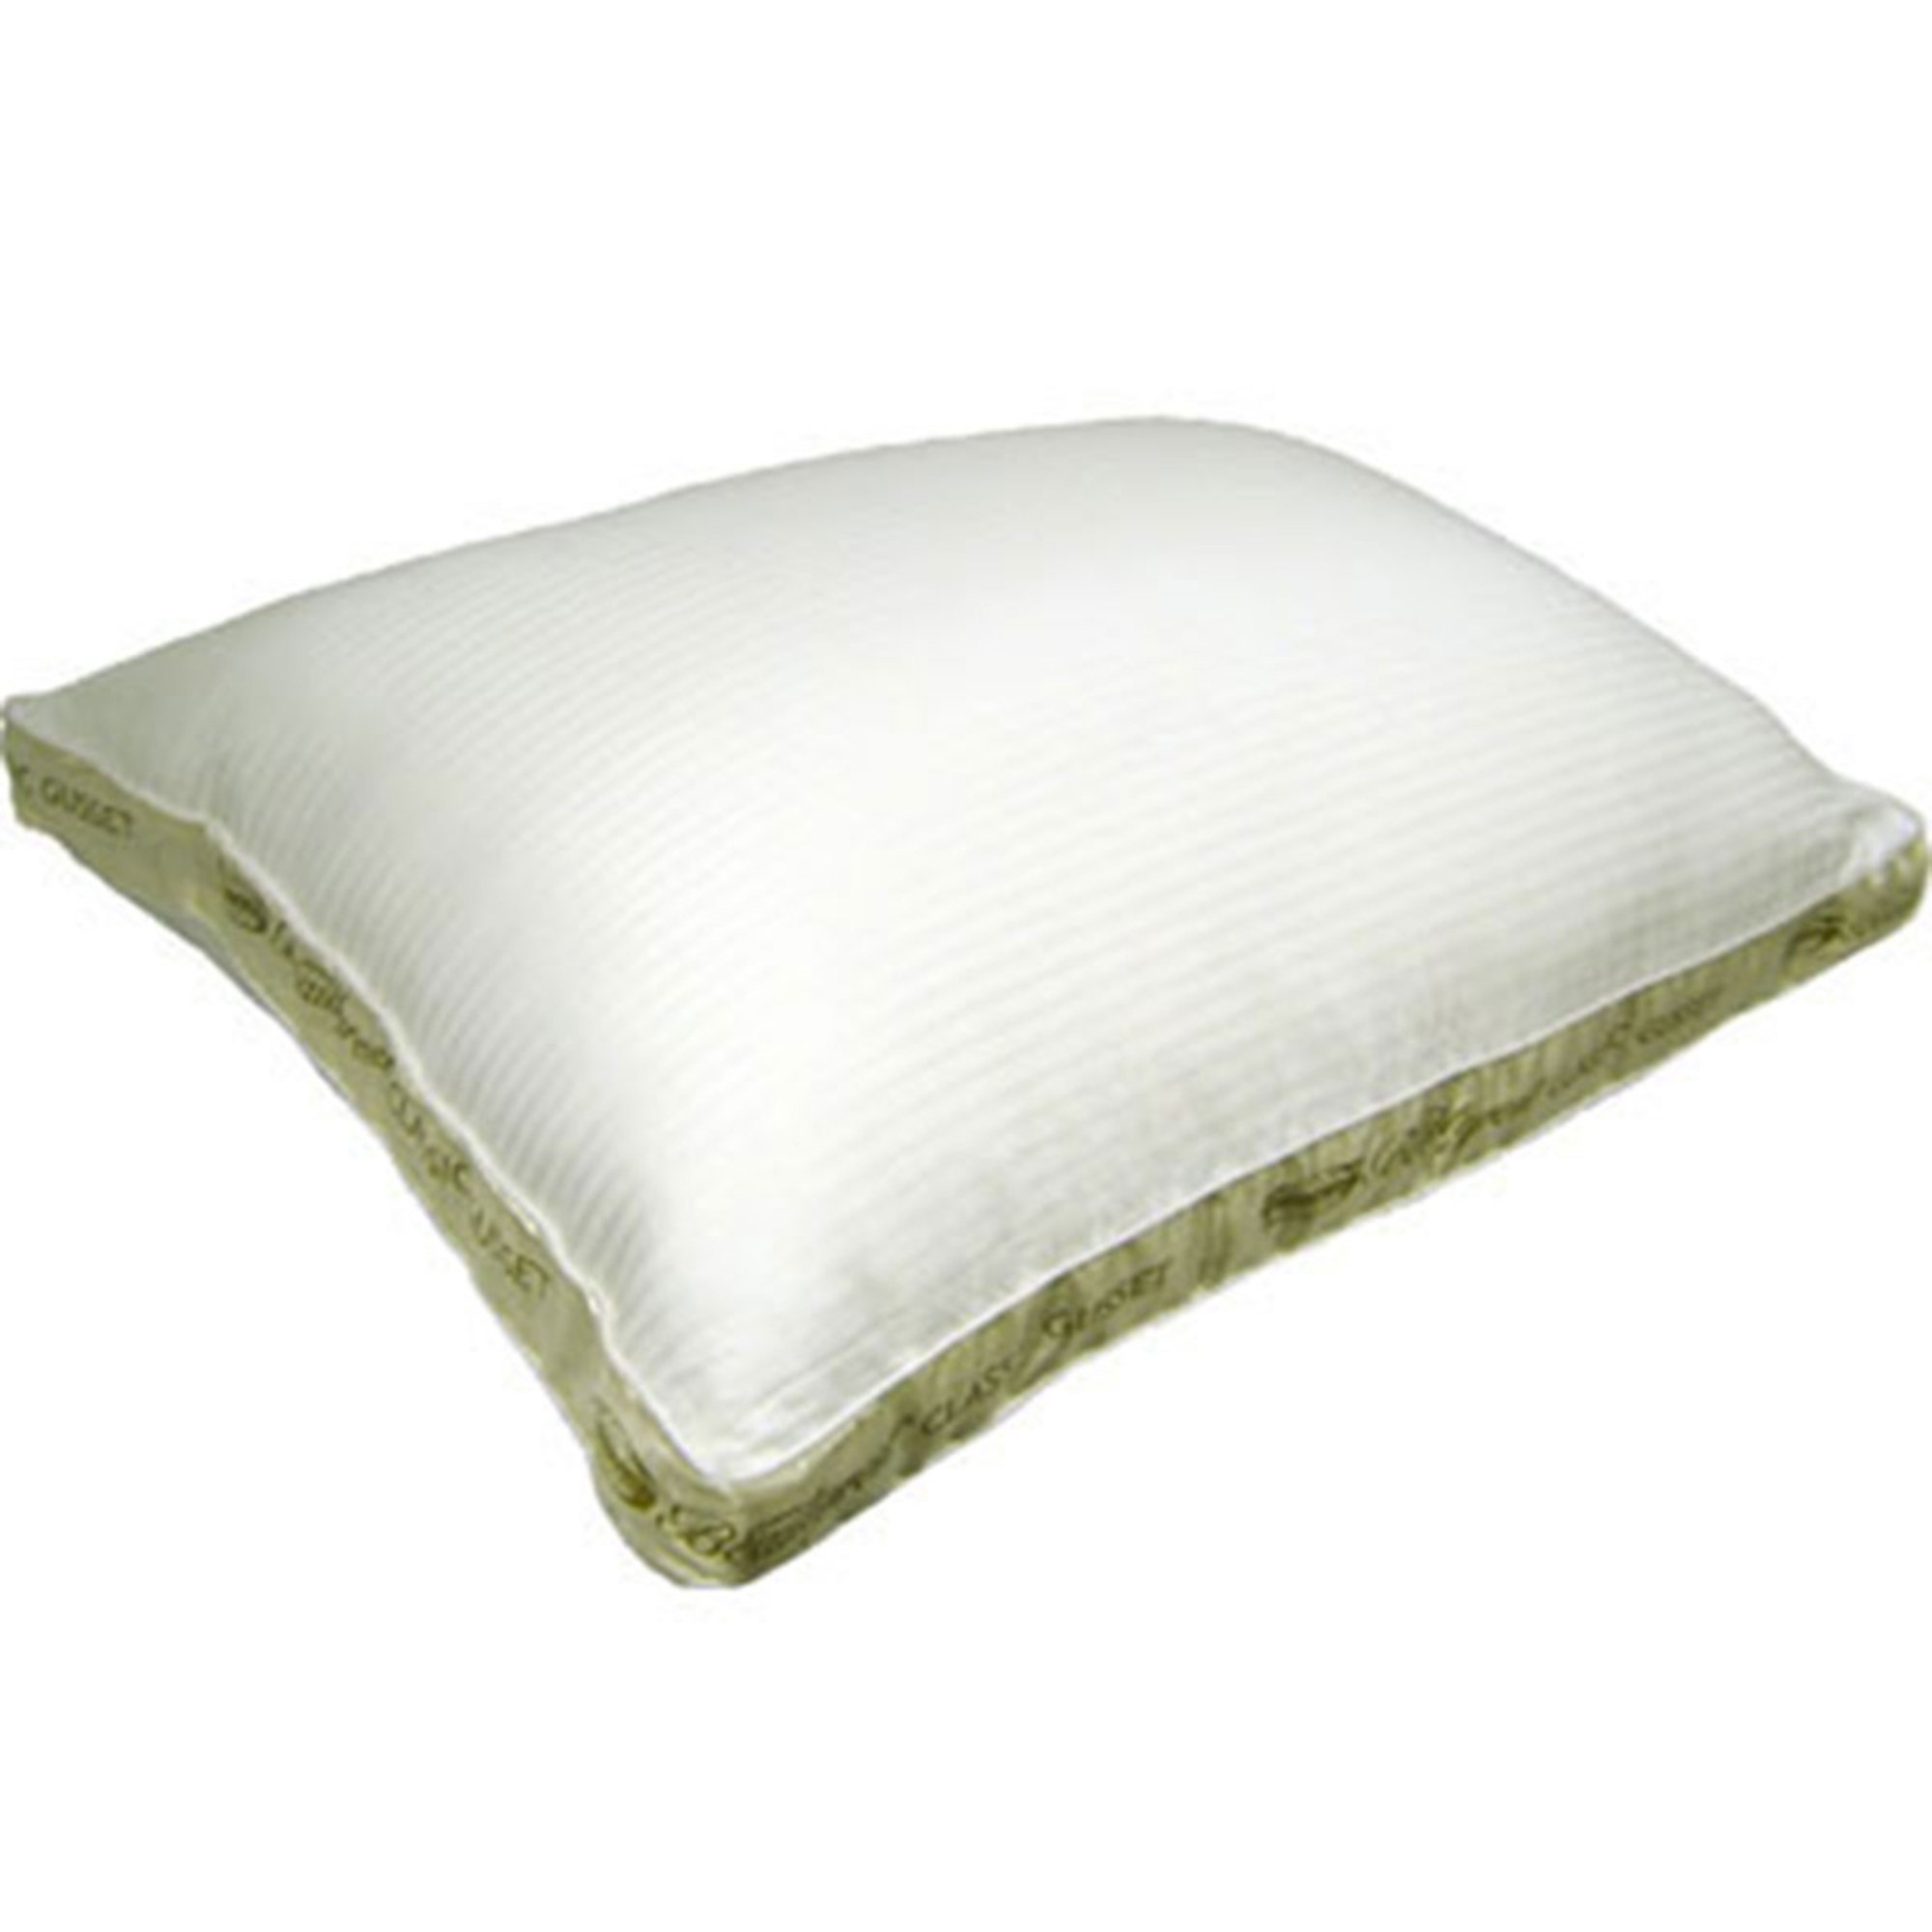 Tempur Traditional Memory Foam Pillow : Firm Bed Pillows tempur traditional firm pillow in stock next day delivery, room essentials ...